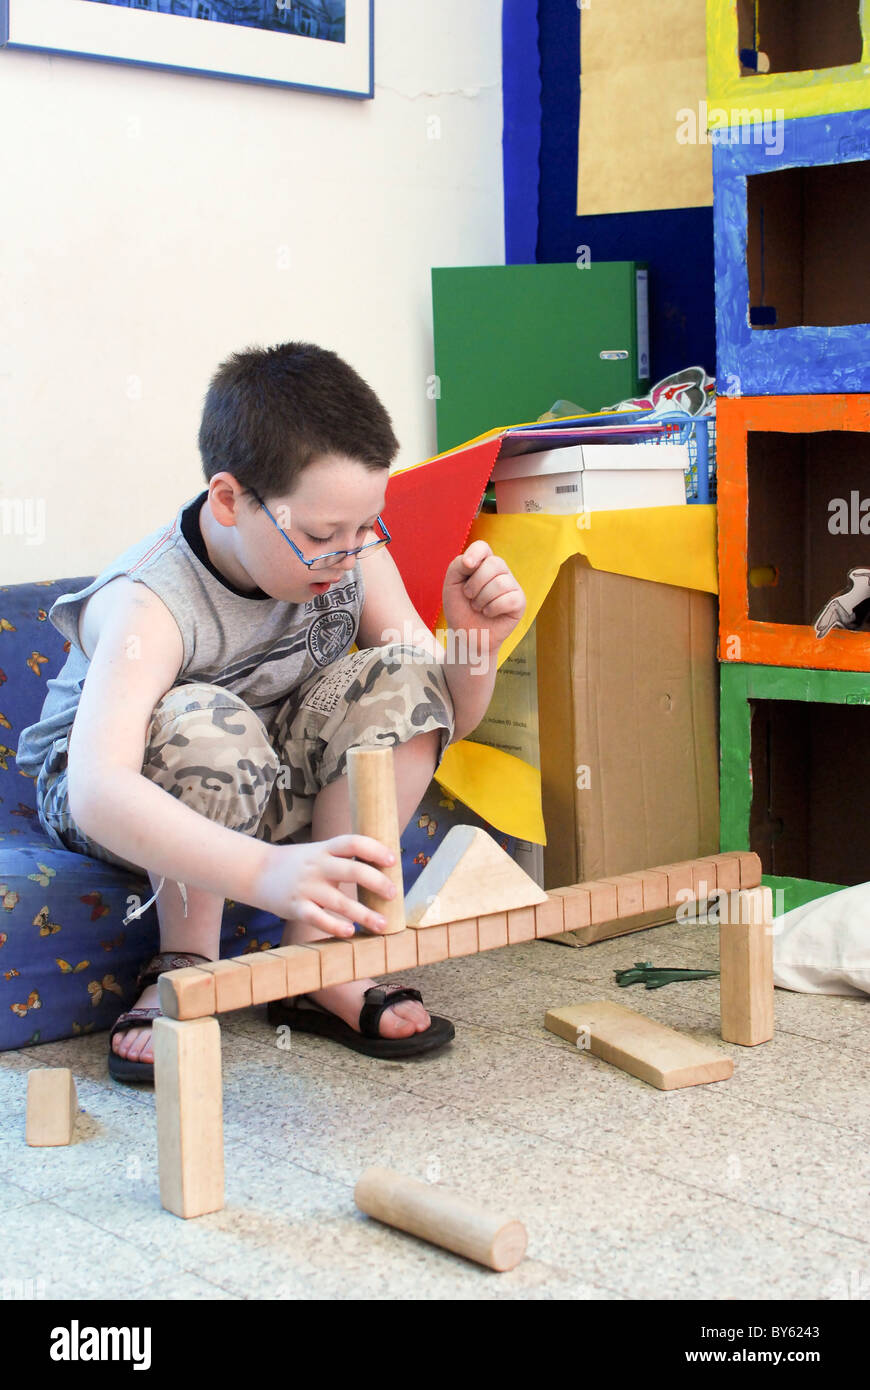 Young boy of 8 building with wooden building blocks in a playroom Stock Photo